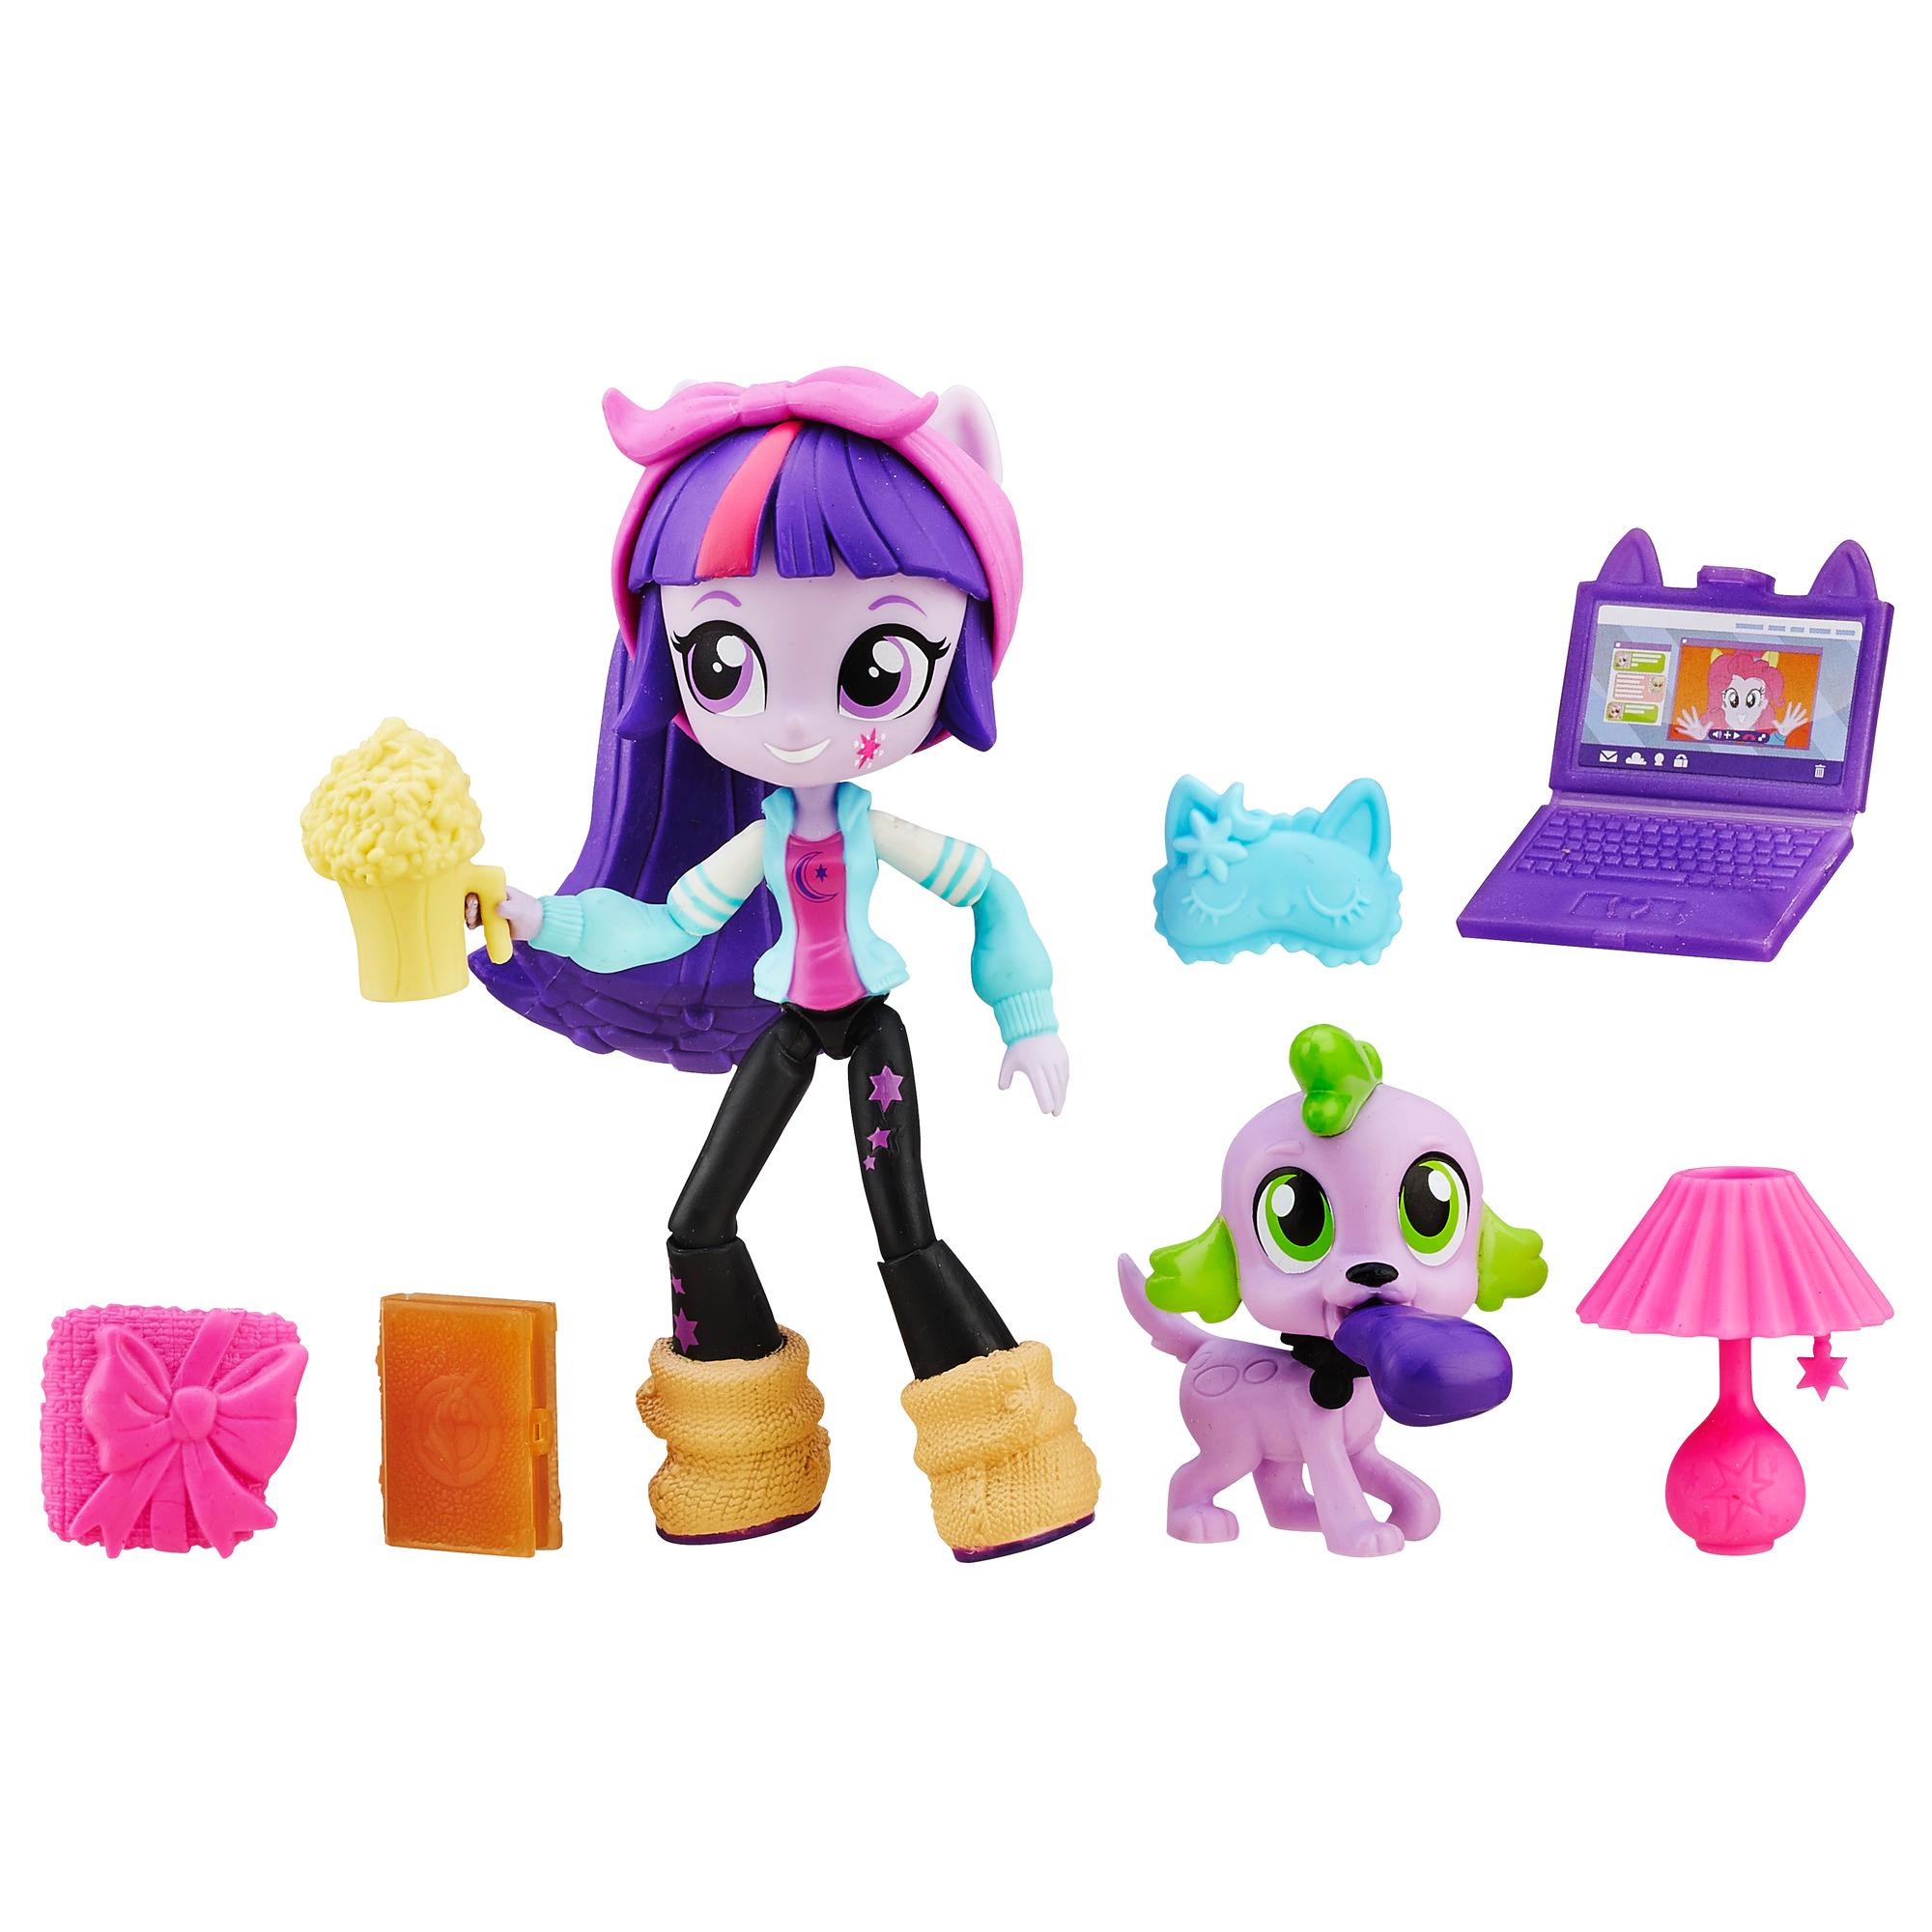 My Little Pony Equestria Girls Minis Twilight Sparkle Slumber Party Set